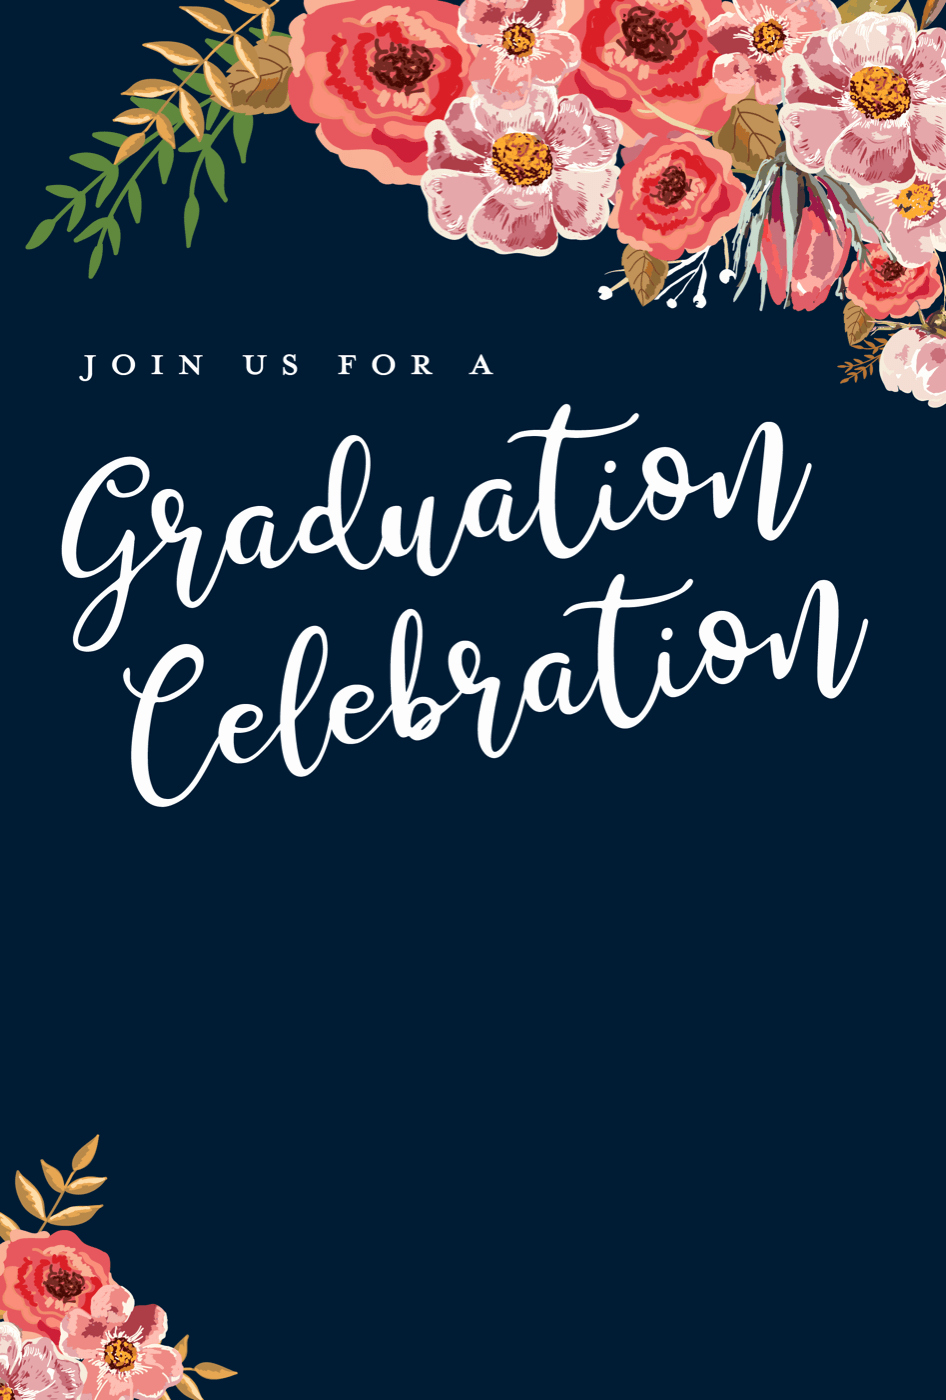 Free Graduation Party Invitation Templates New 5 Editable Graduation Party Invitation Templates Tips